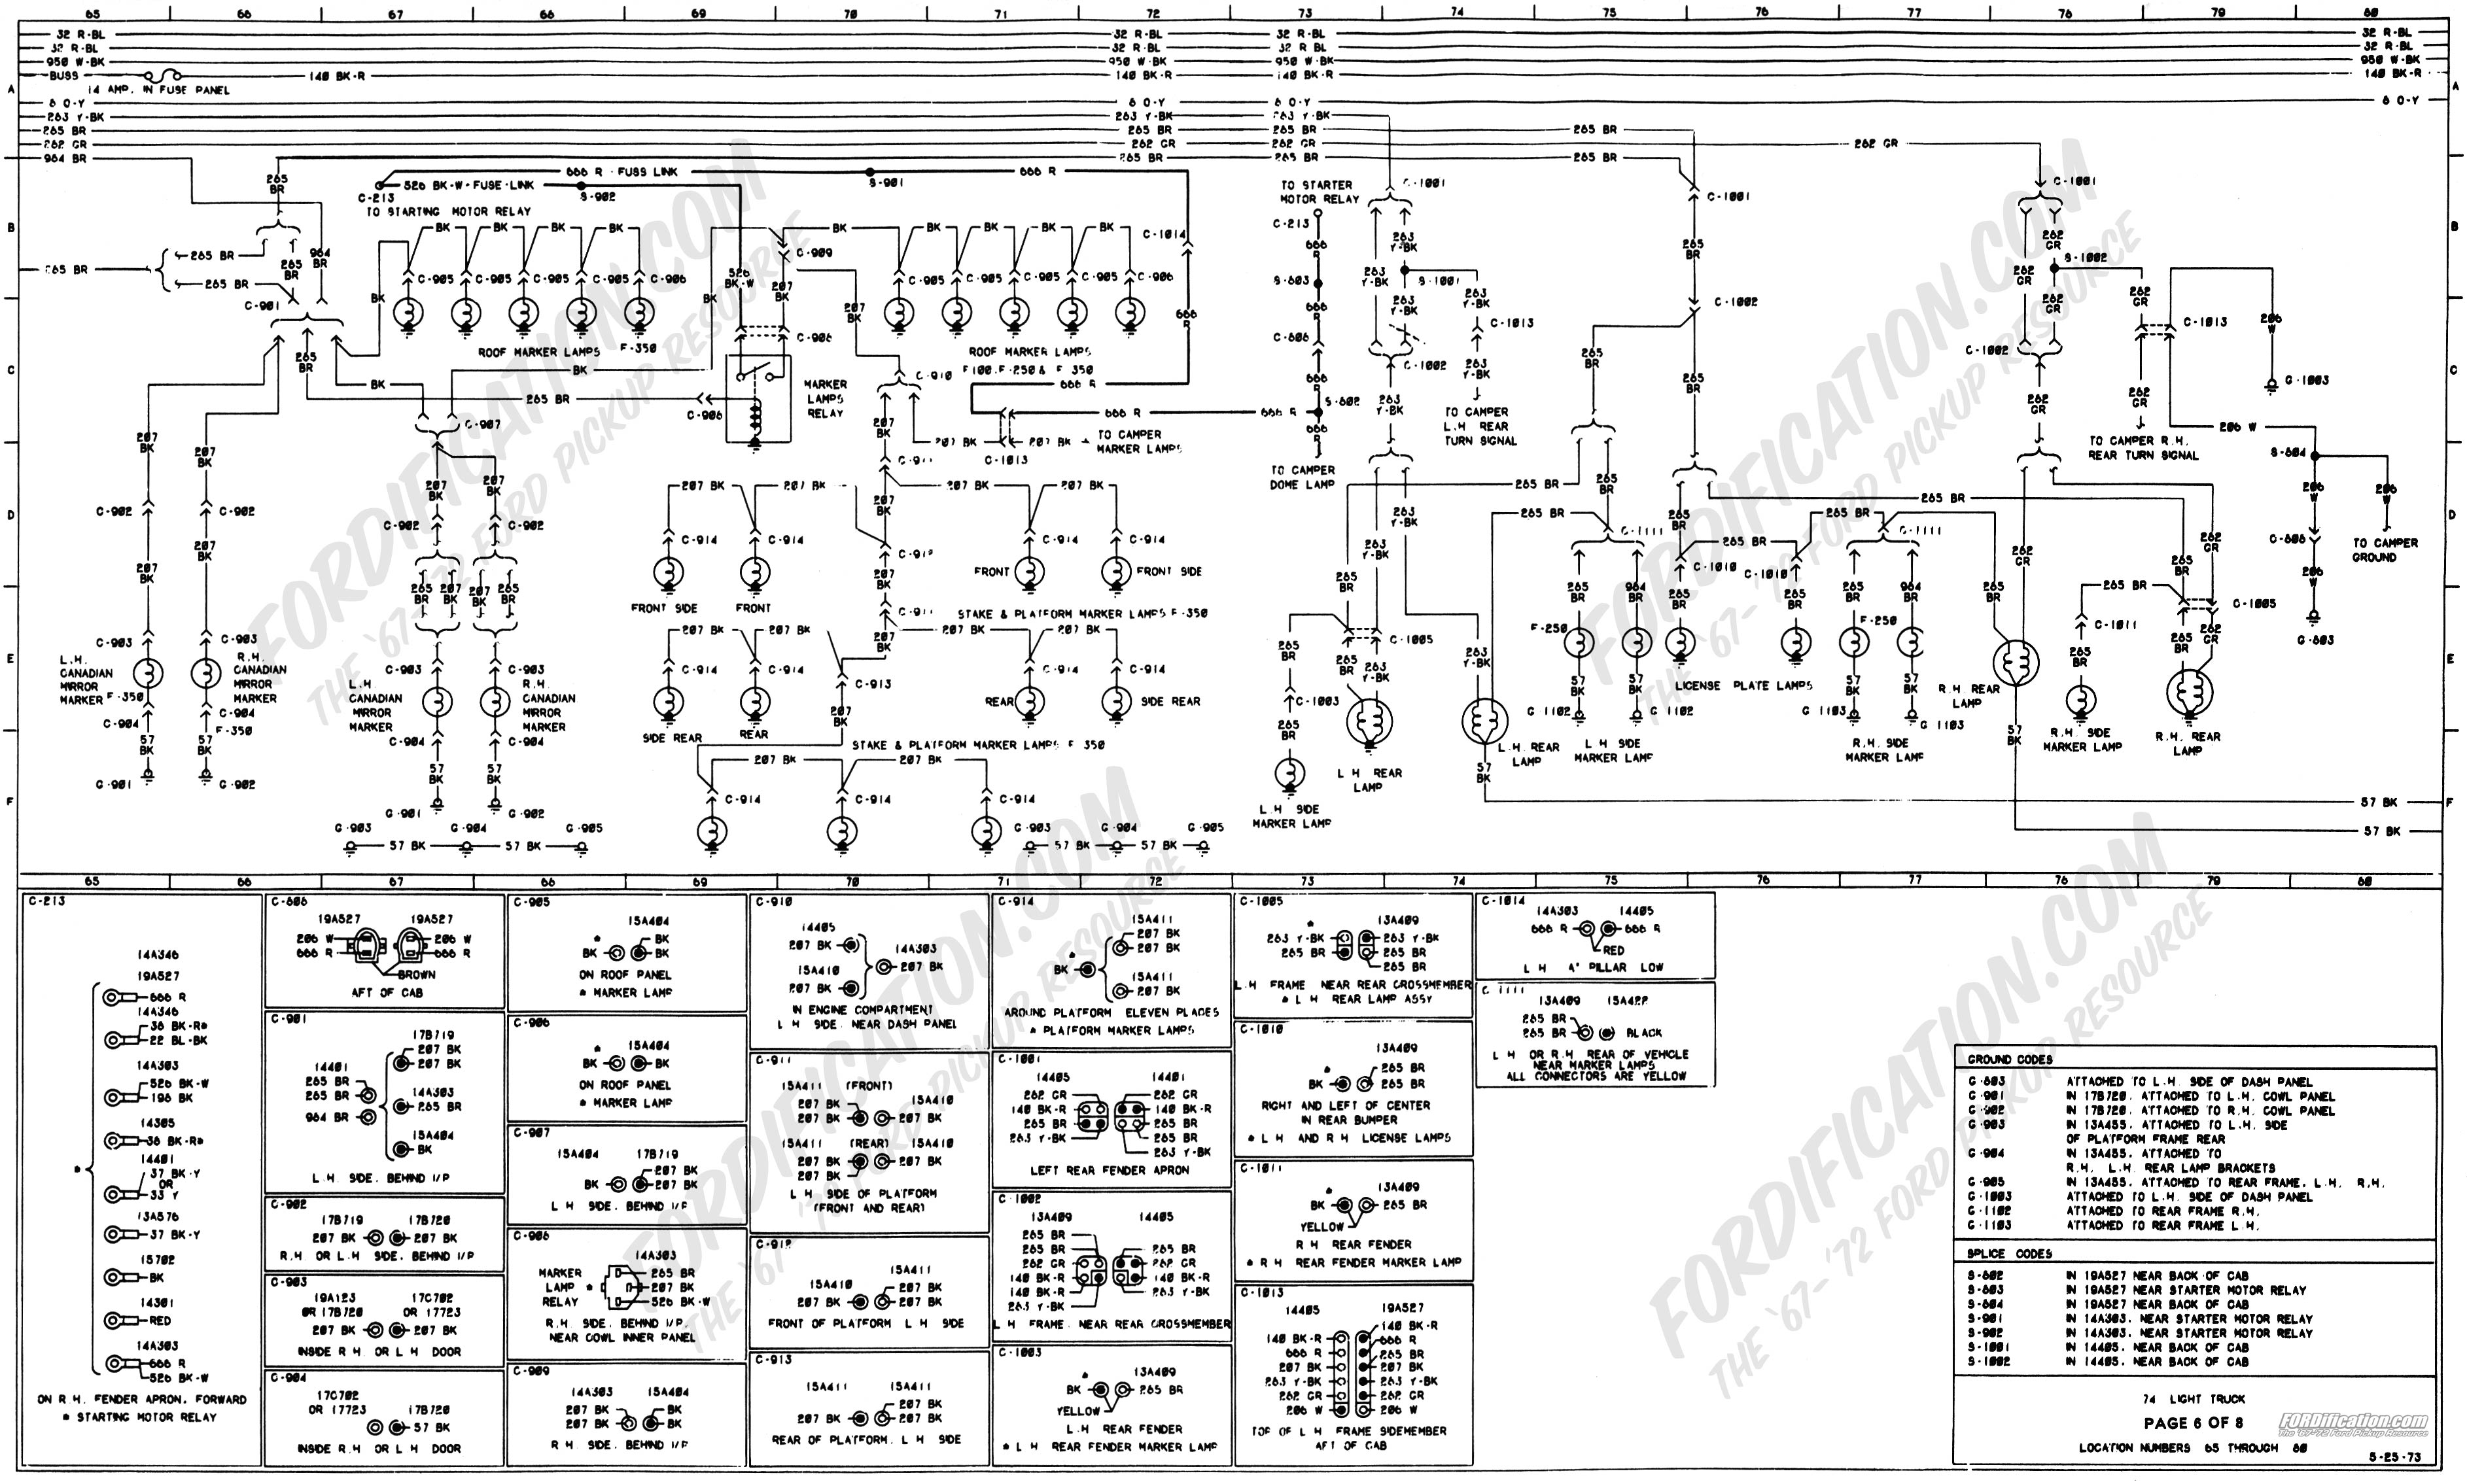 1975 F250 Wiring Diagram Diagrams Schema Impala 1973 1979 Ford Truck Schematics Fordification Net 2003 Trailer Harness